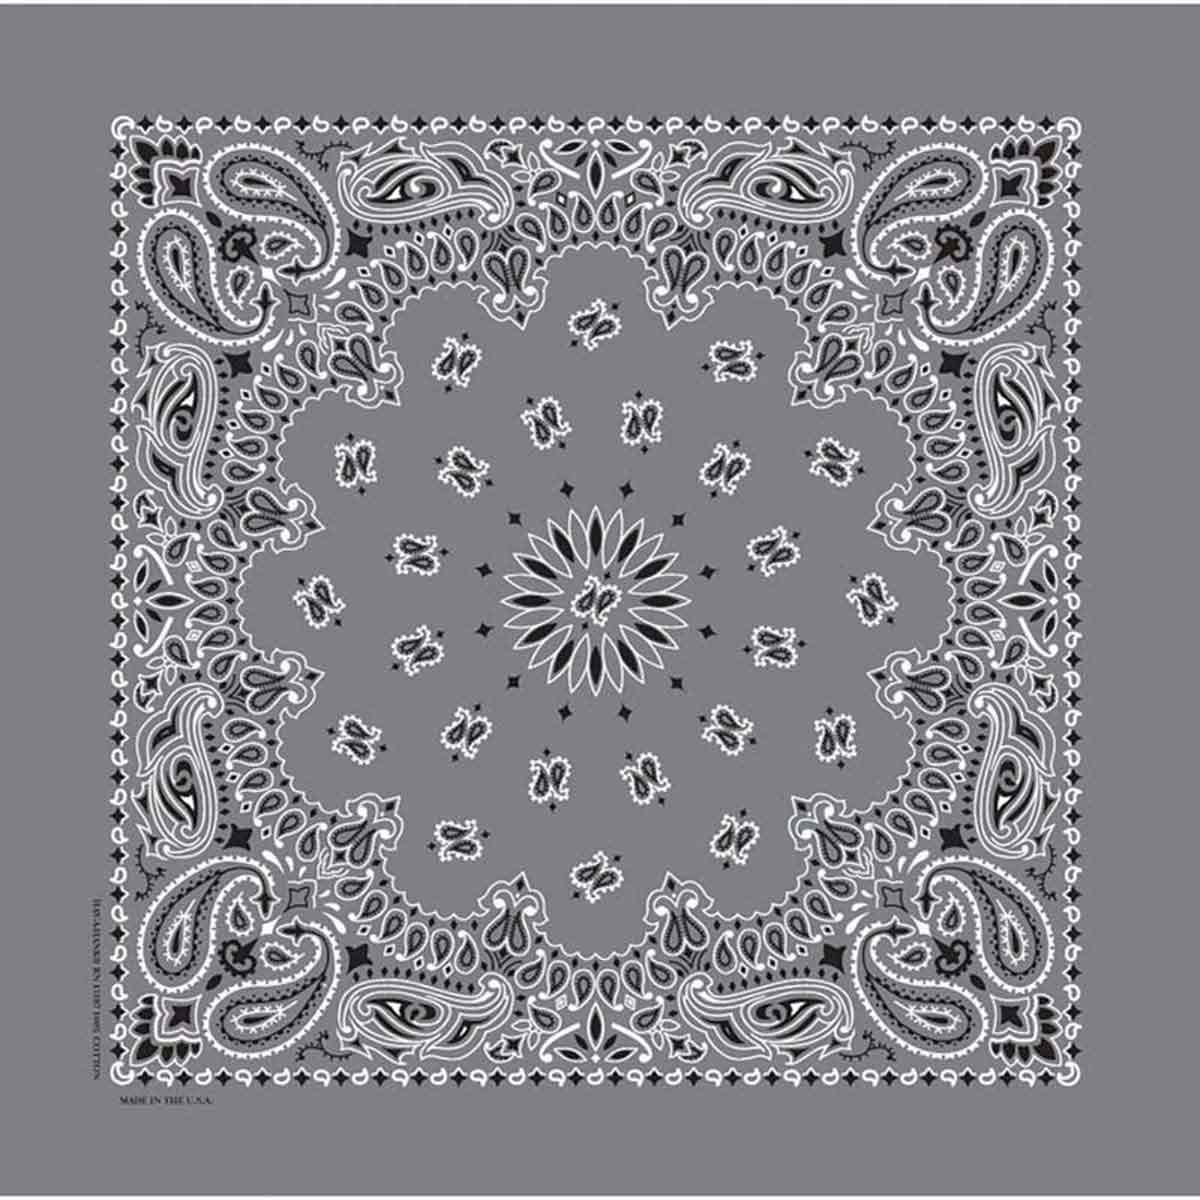 Square Poly/Cotton Blend Charcoal Paisley Bandanna for Dogs and Cats by Fancy Finishes